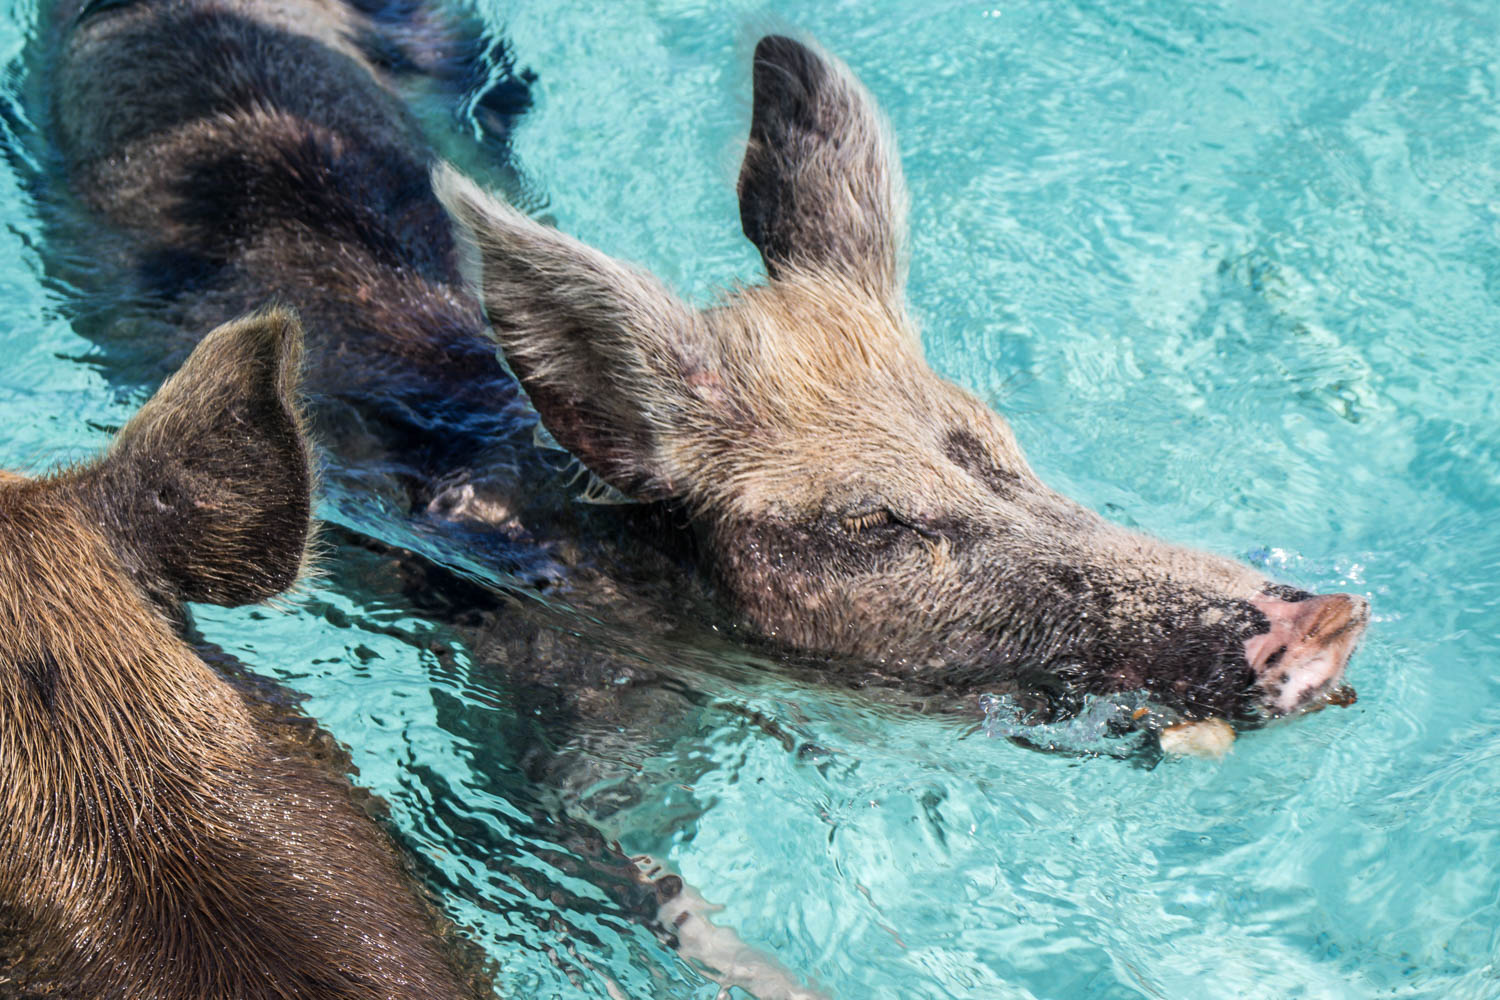 Pig tours are among the most popular attractions on Pig Island Bahamas. Swimming with pigs is one of the nost popular excursions in the world.